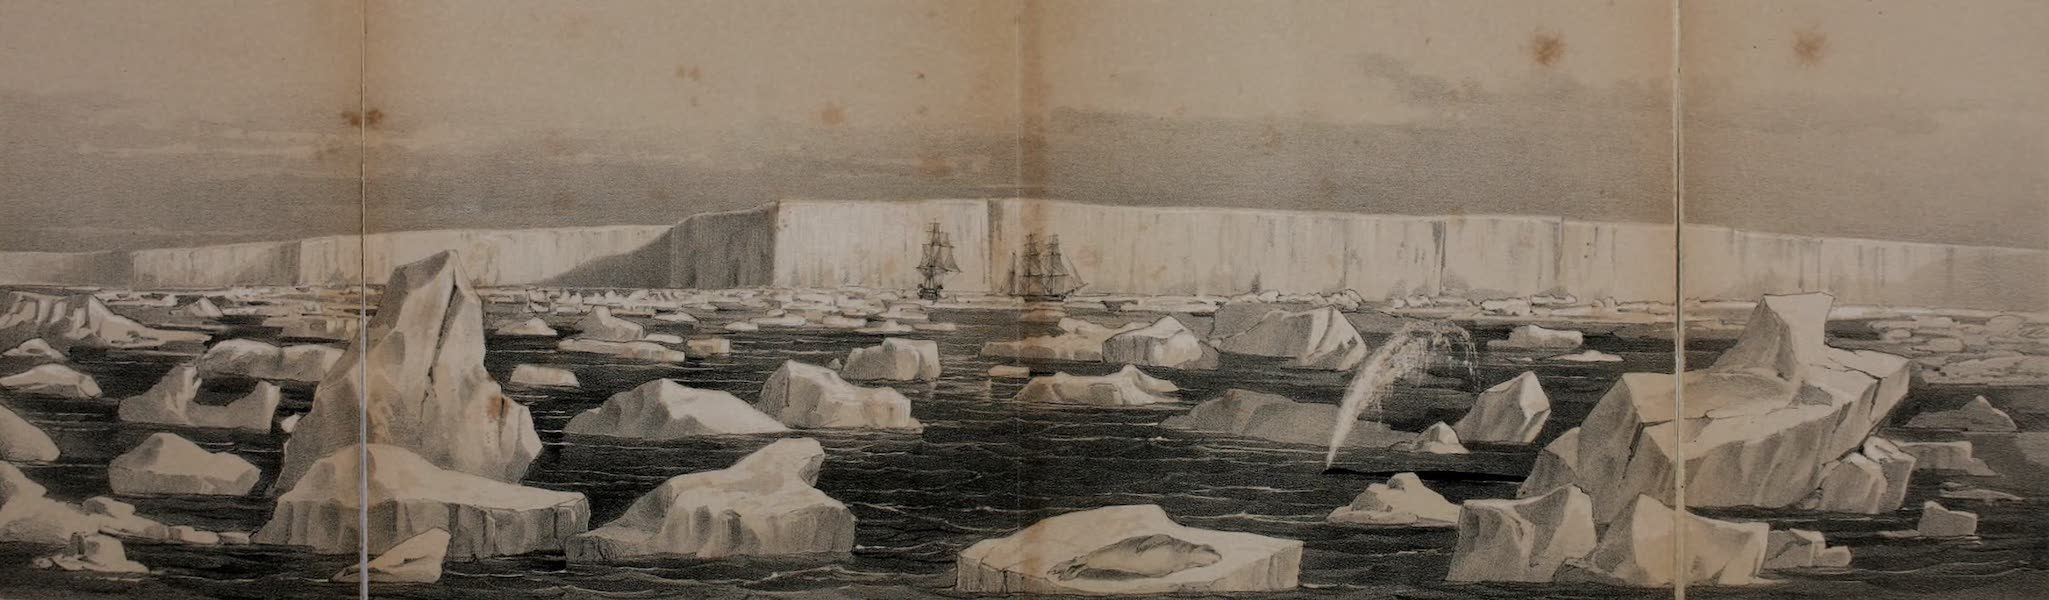 A Voyage of Discovery and Research in the Southern and Antarctic Regions Vol. 1 - South Polar Barrier (1847)